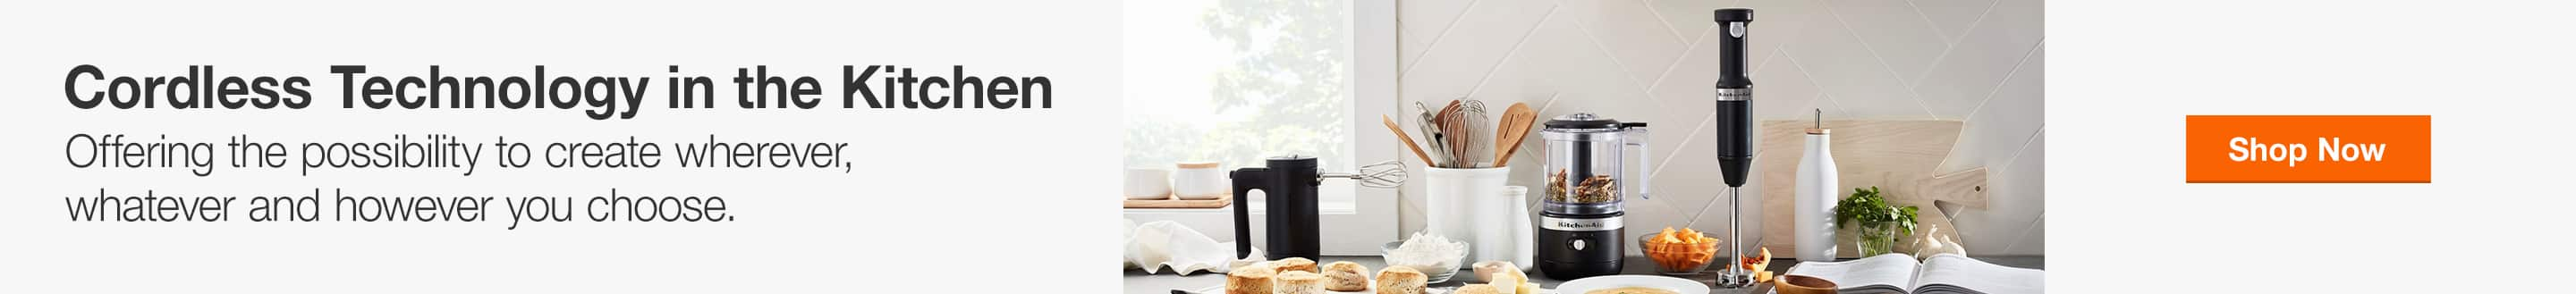 Shop Cordless Technology in the Kitchen